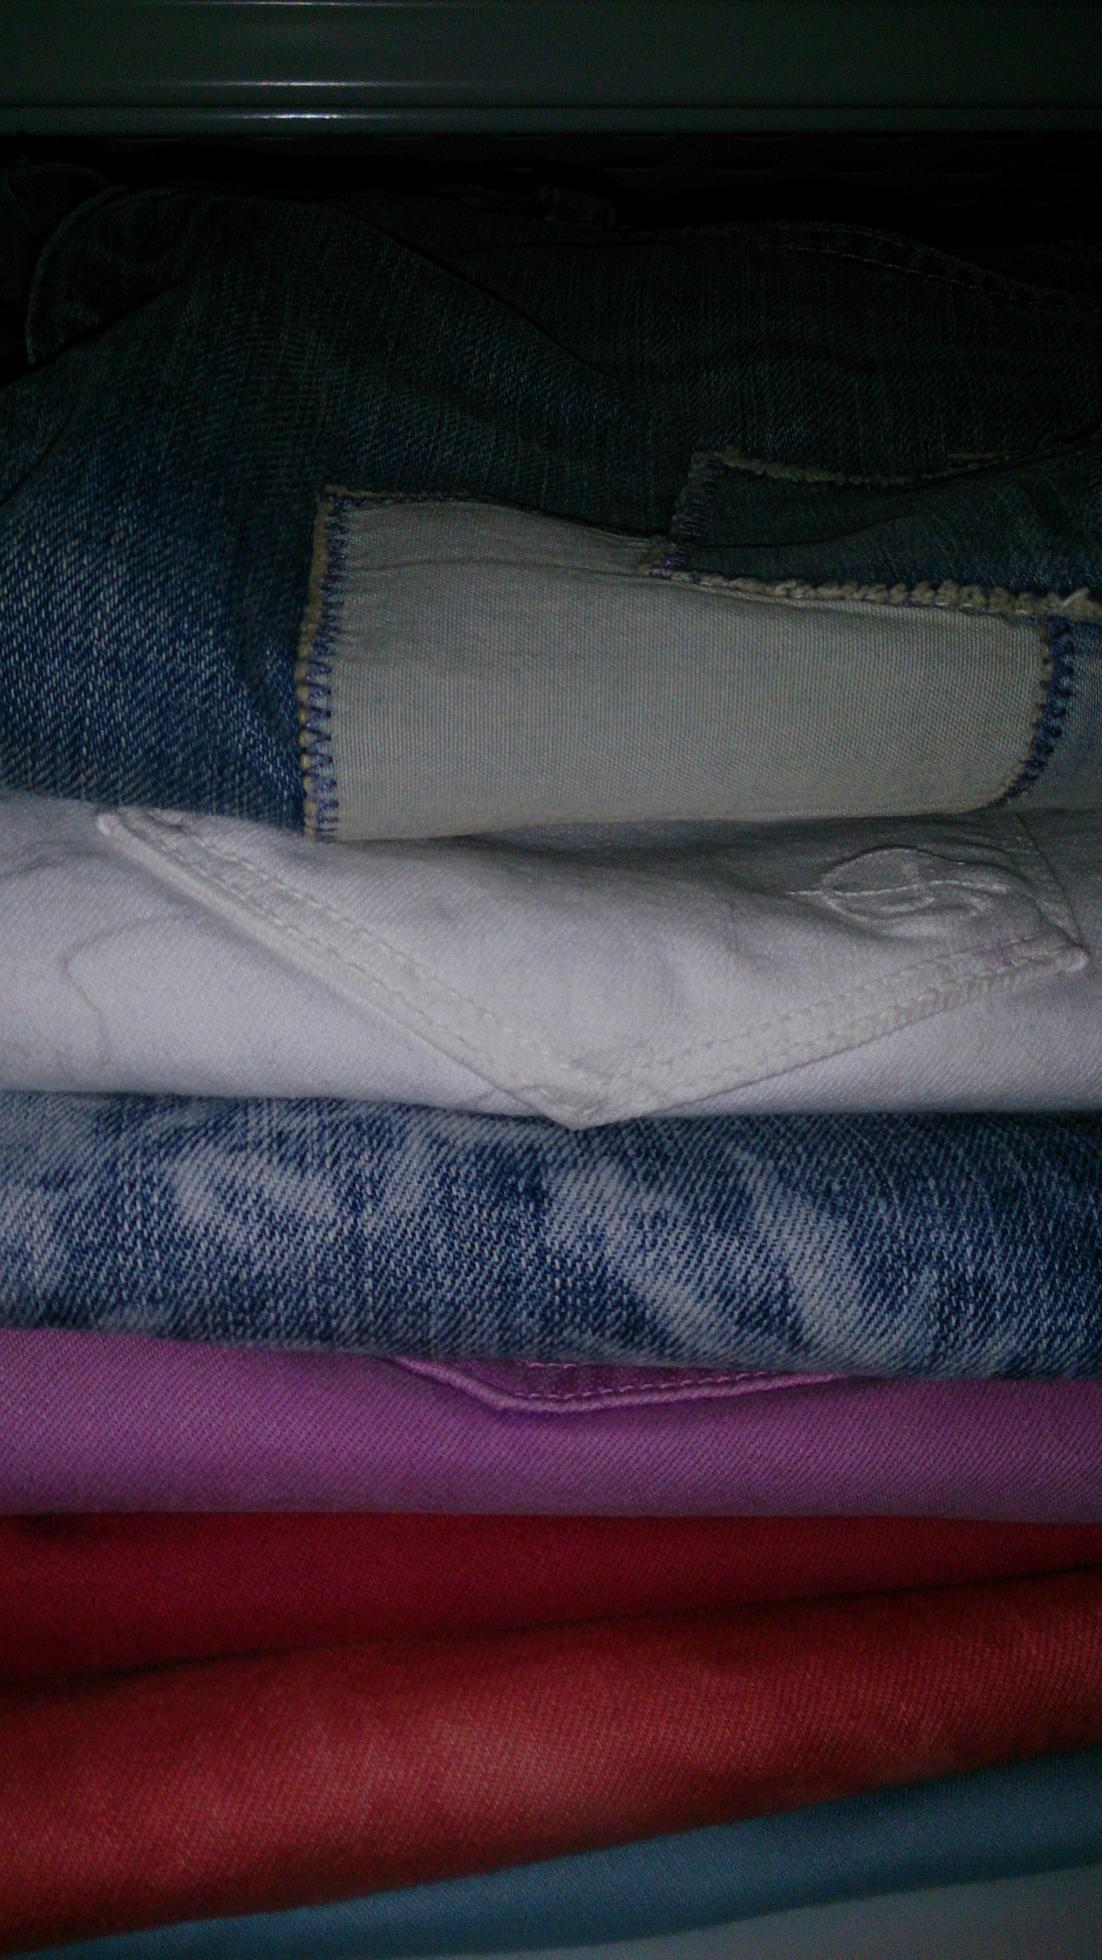 2015-04-06 Denim Stack